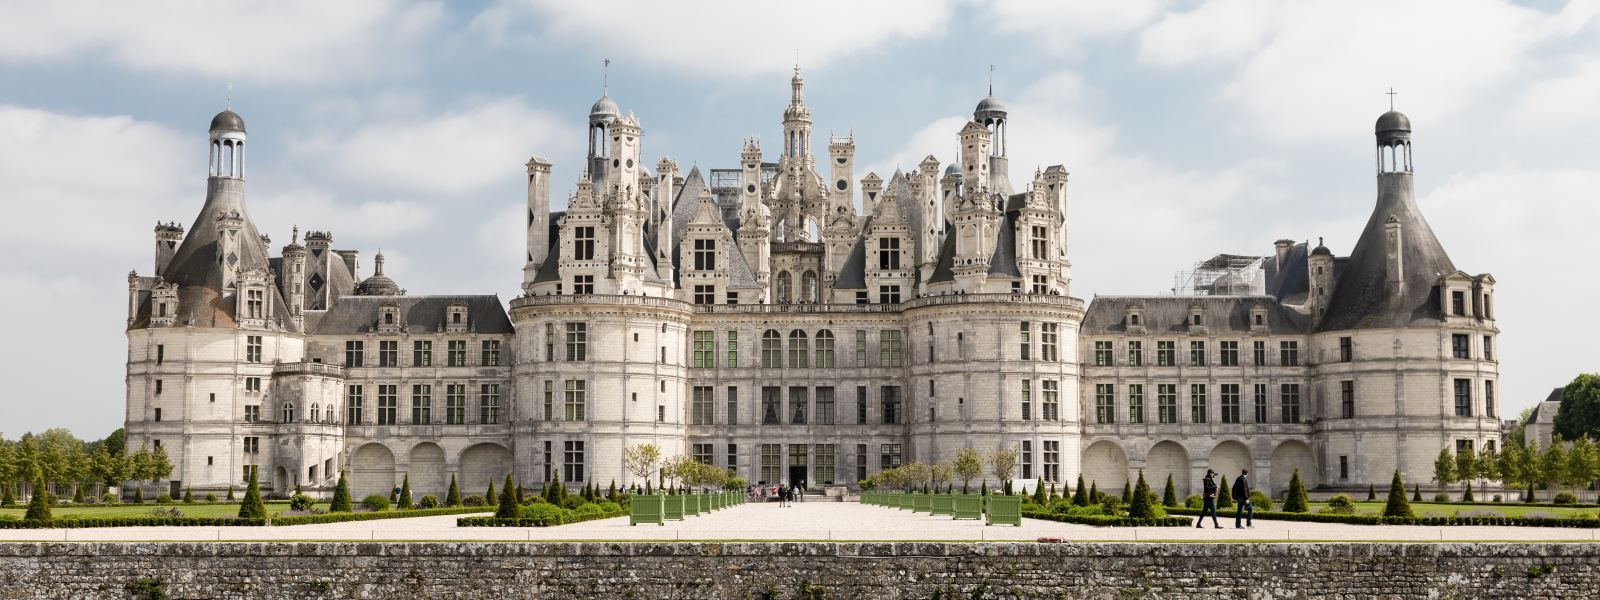 Best castles and palaces in the world